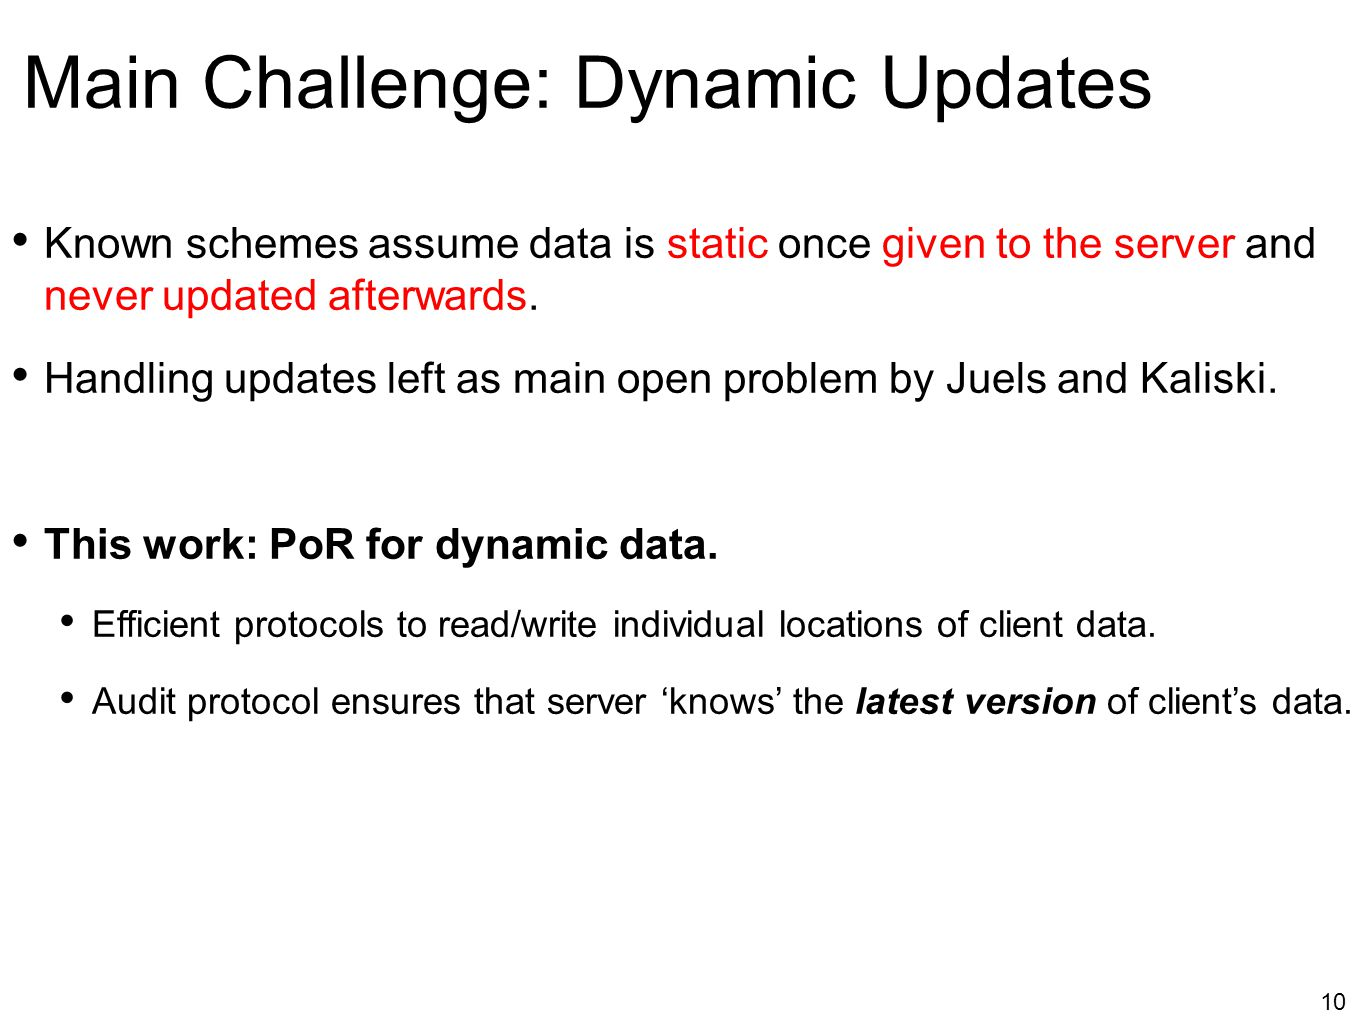 Main Challenge: Dynamic Updates